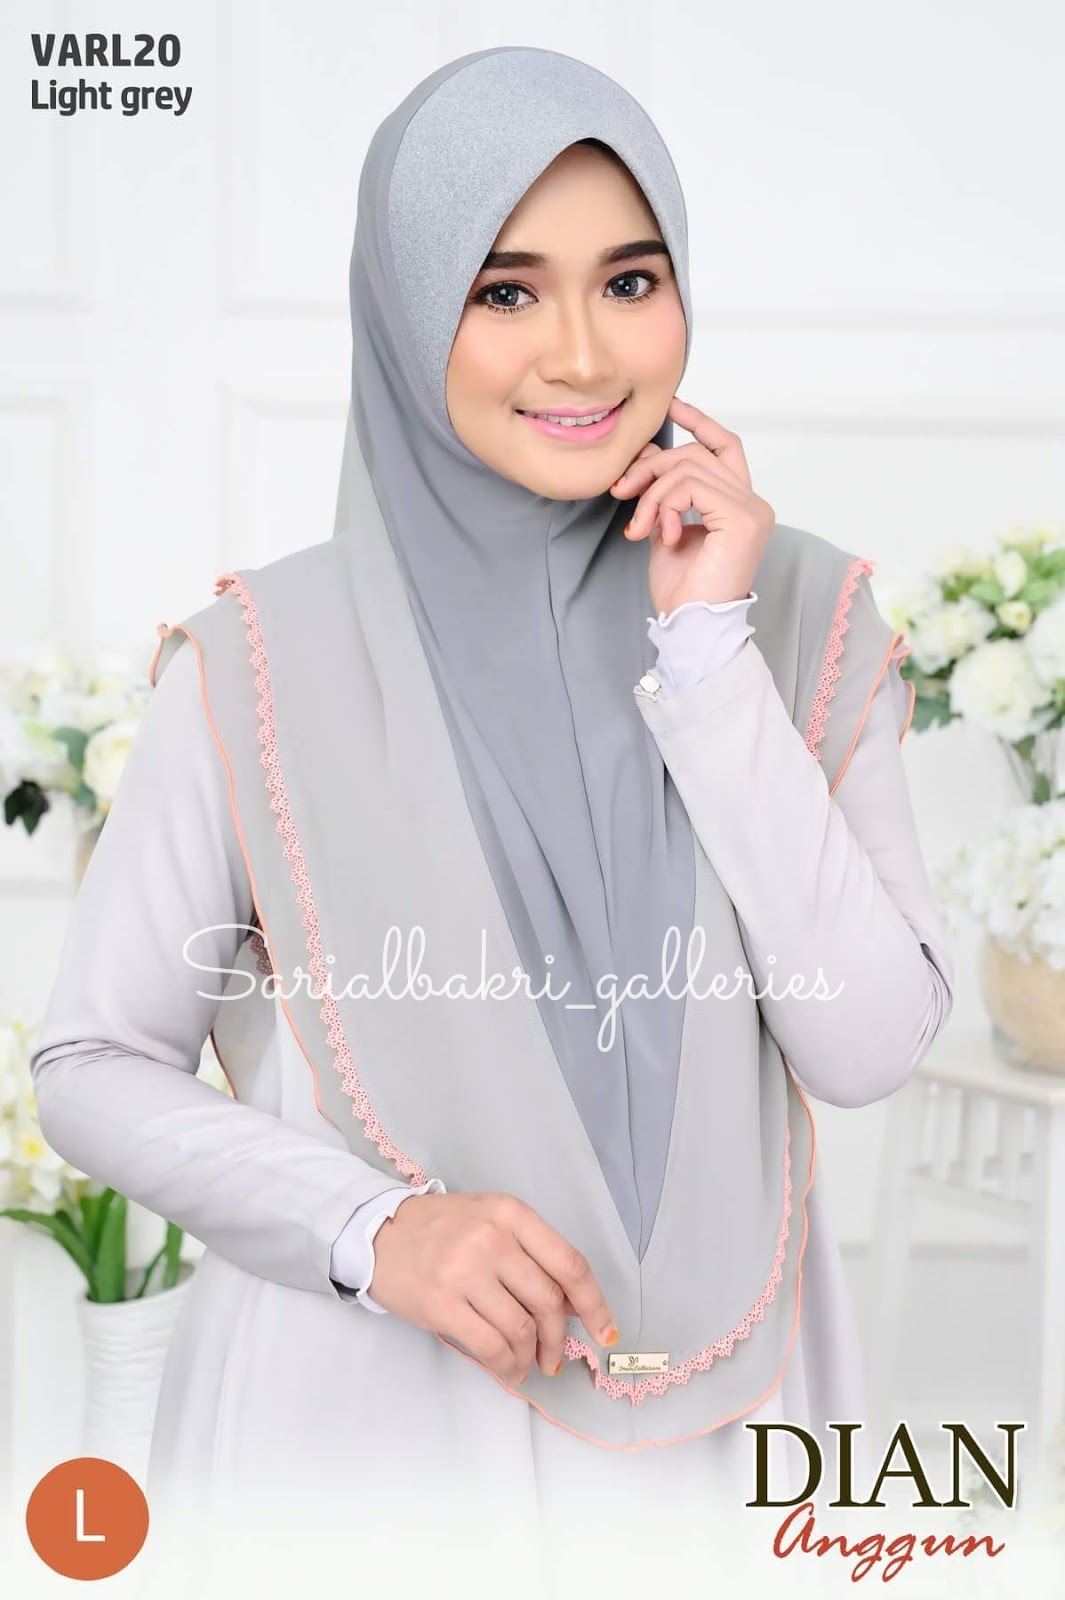 Sari Galleries Tudung Dian Anggun